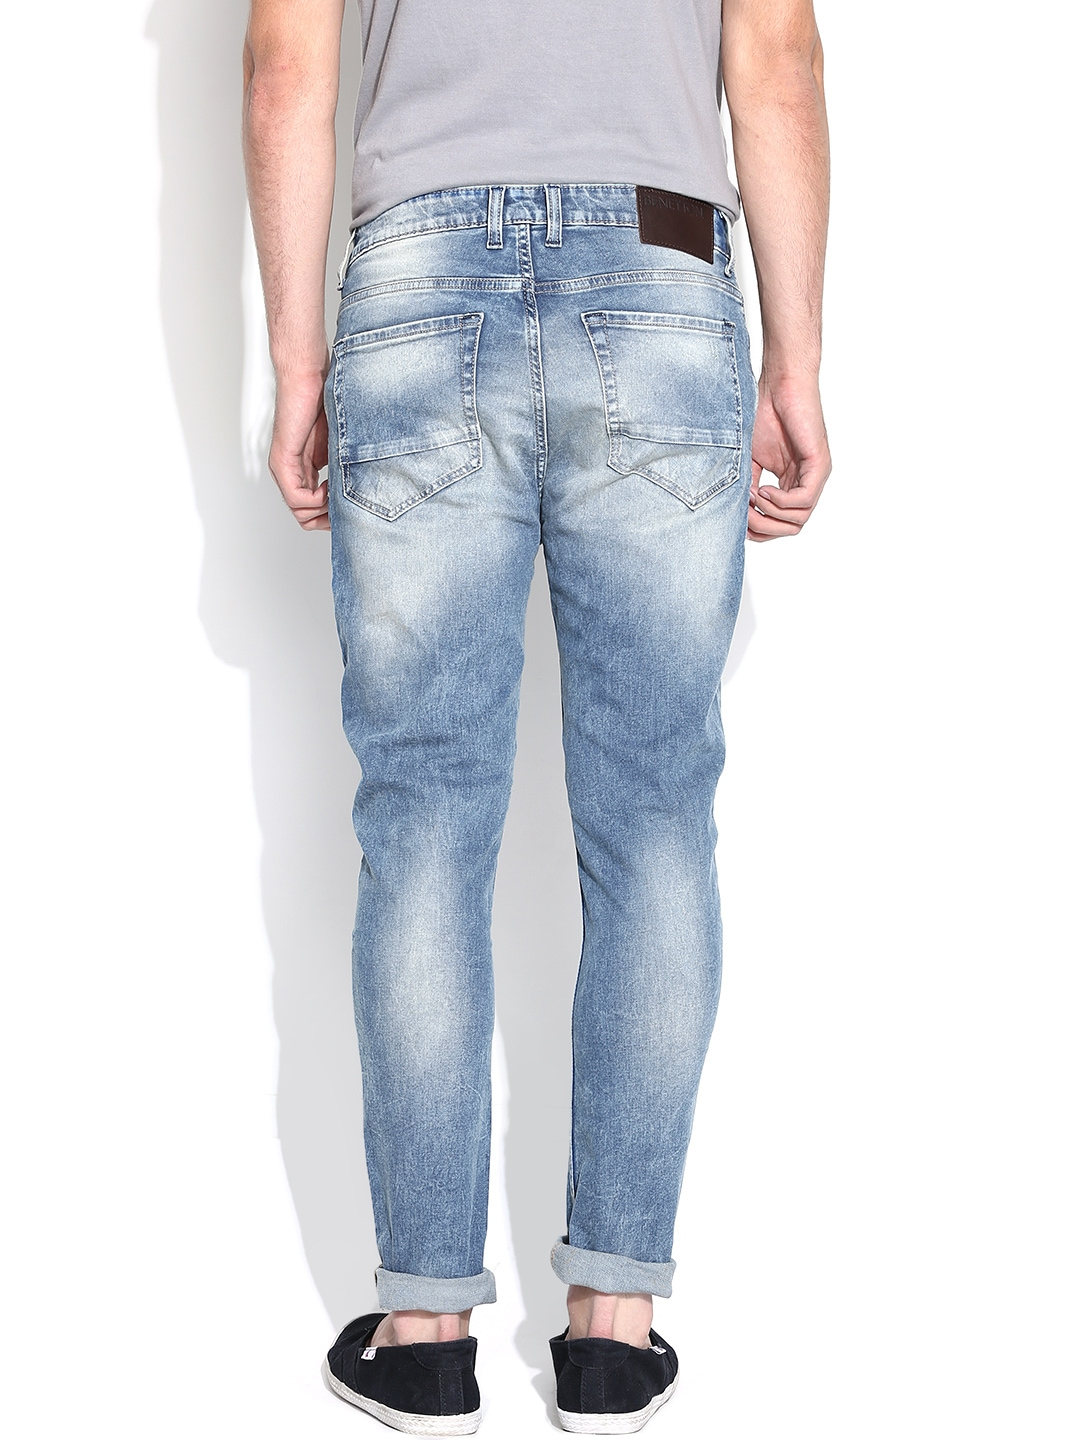 Home Clothing Men Clothing Jeans United Colors of Benetton Jeans